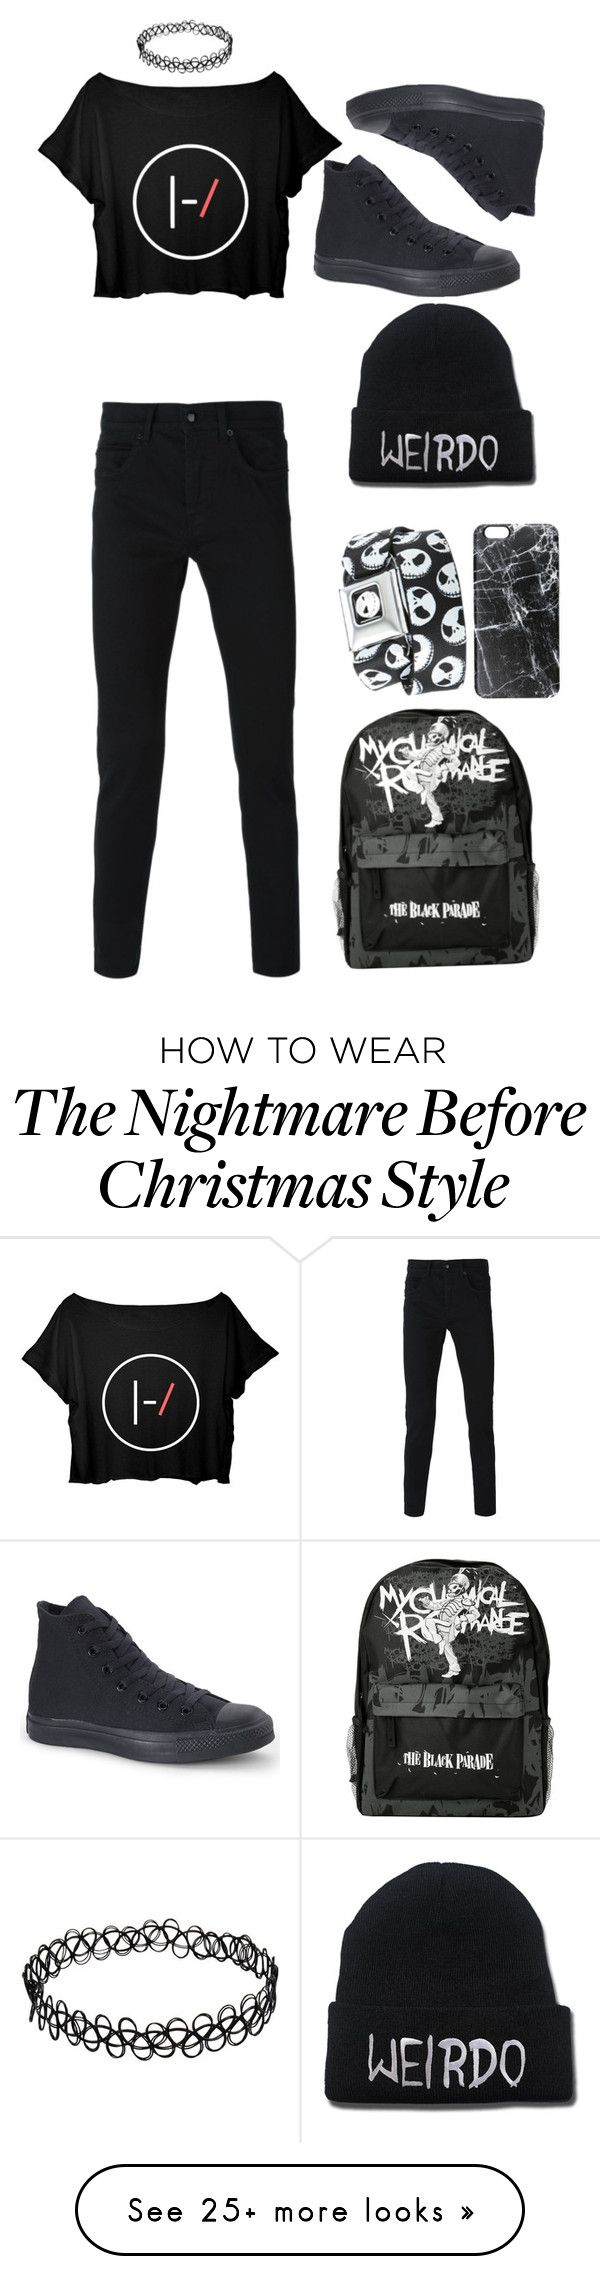 """Untitled #45"" by crxye on Polyvore featuring Converse, Casetify, women's clothing, women, female, woman, misses and juniors"